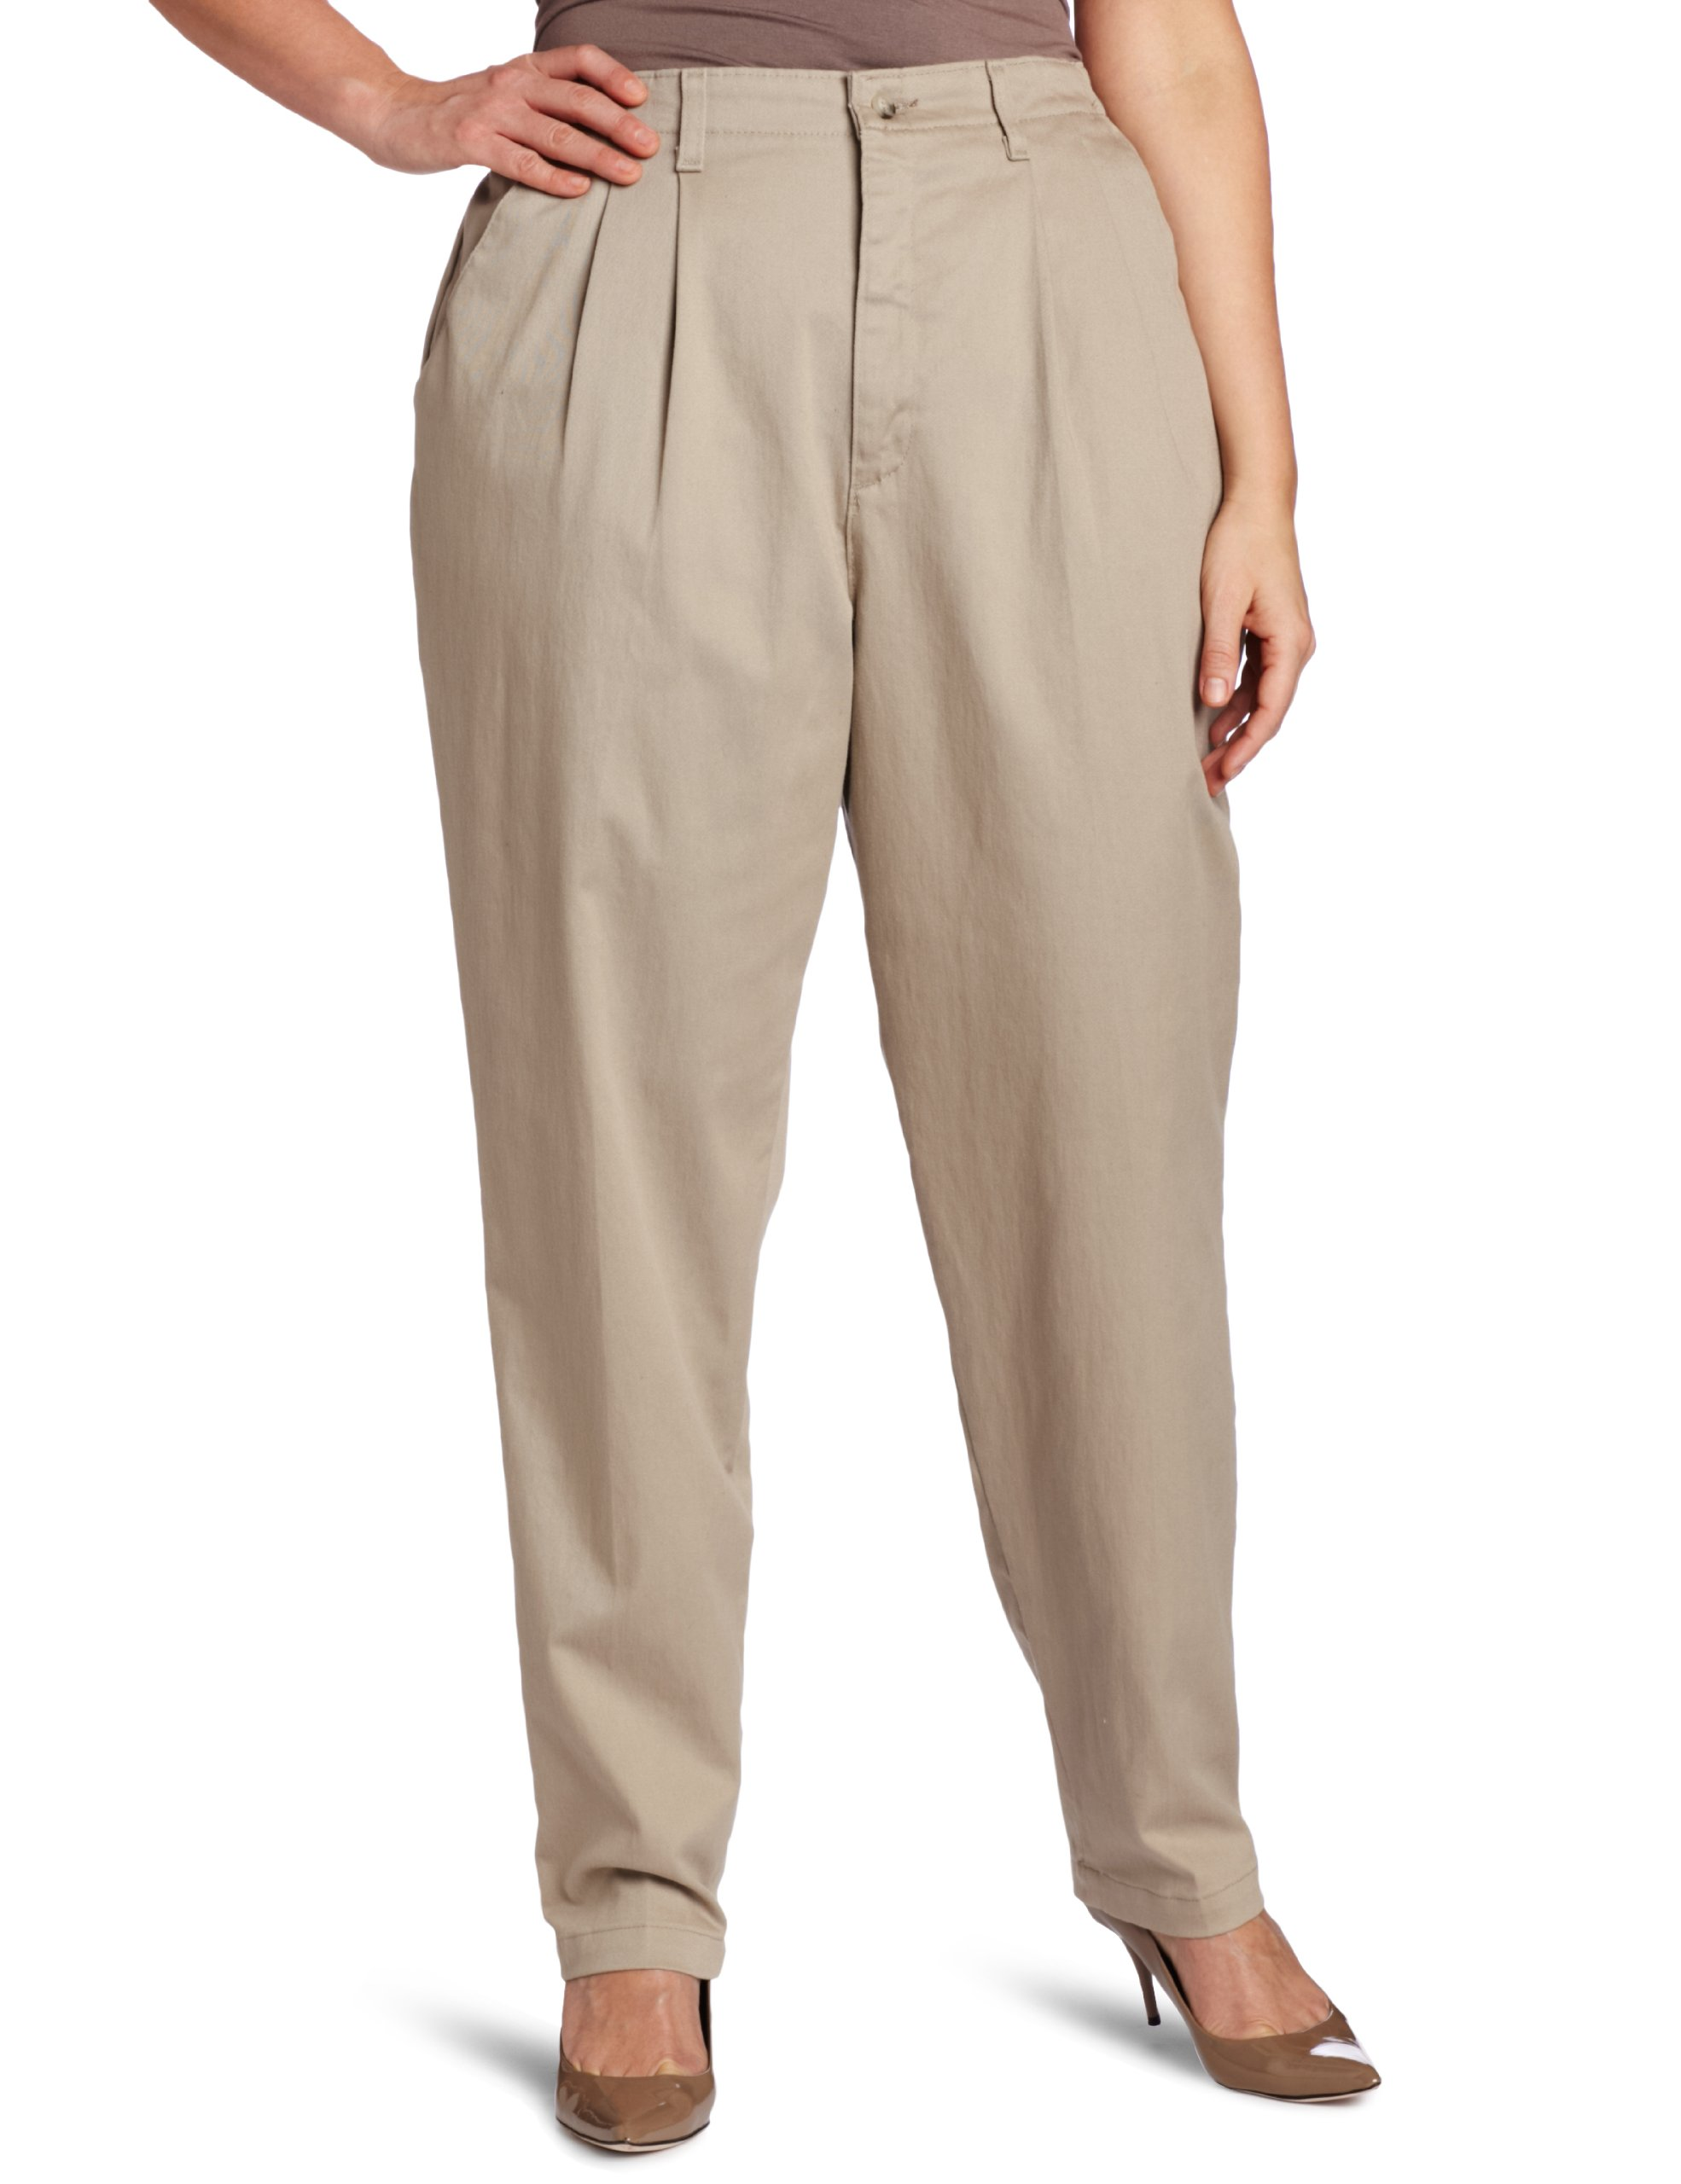 LEE Women's Plus-Size Relaxed Fit Side Elastic Pant, Taupe, 18W Petite